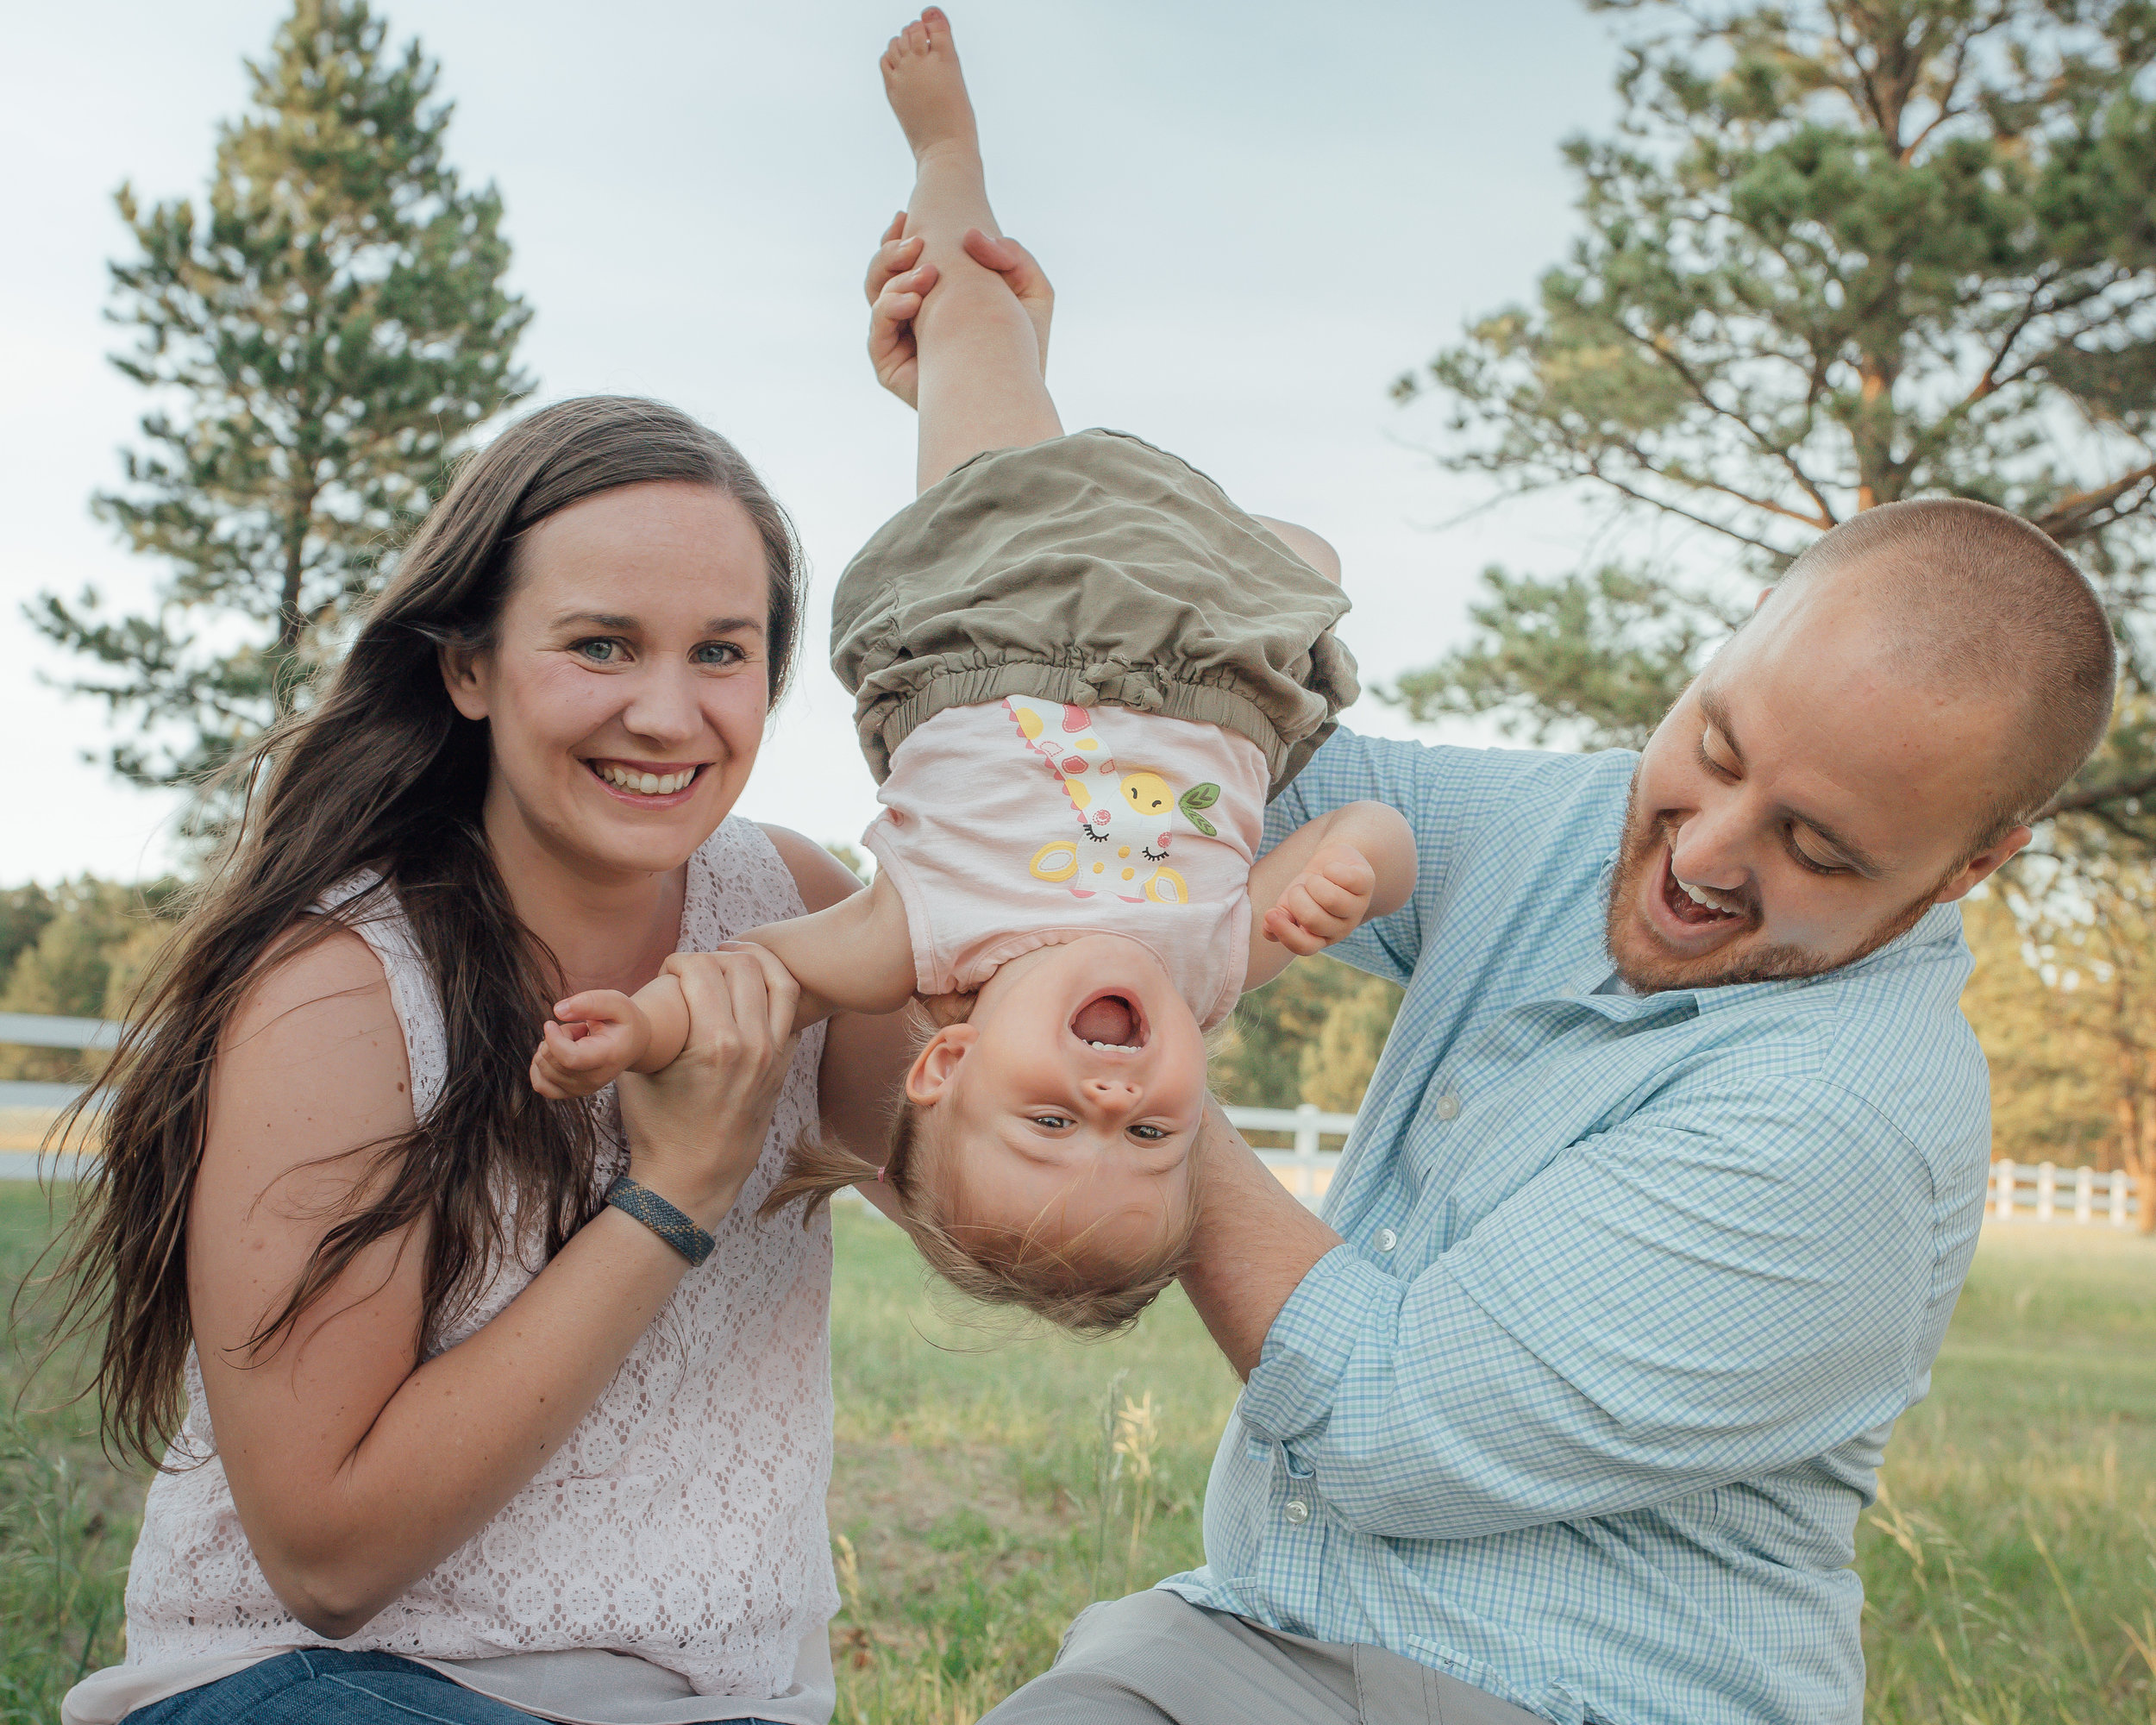 Annual Family Photo - Dustin is full of talent. He took amazing photos of our family capturing sweet moments of our little girl. He is easy to work with, flexible, and professional. I would highly suggest him for any of your photo needs!-Ashley (Elizabeth, CO)